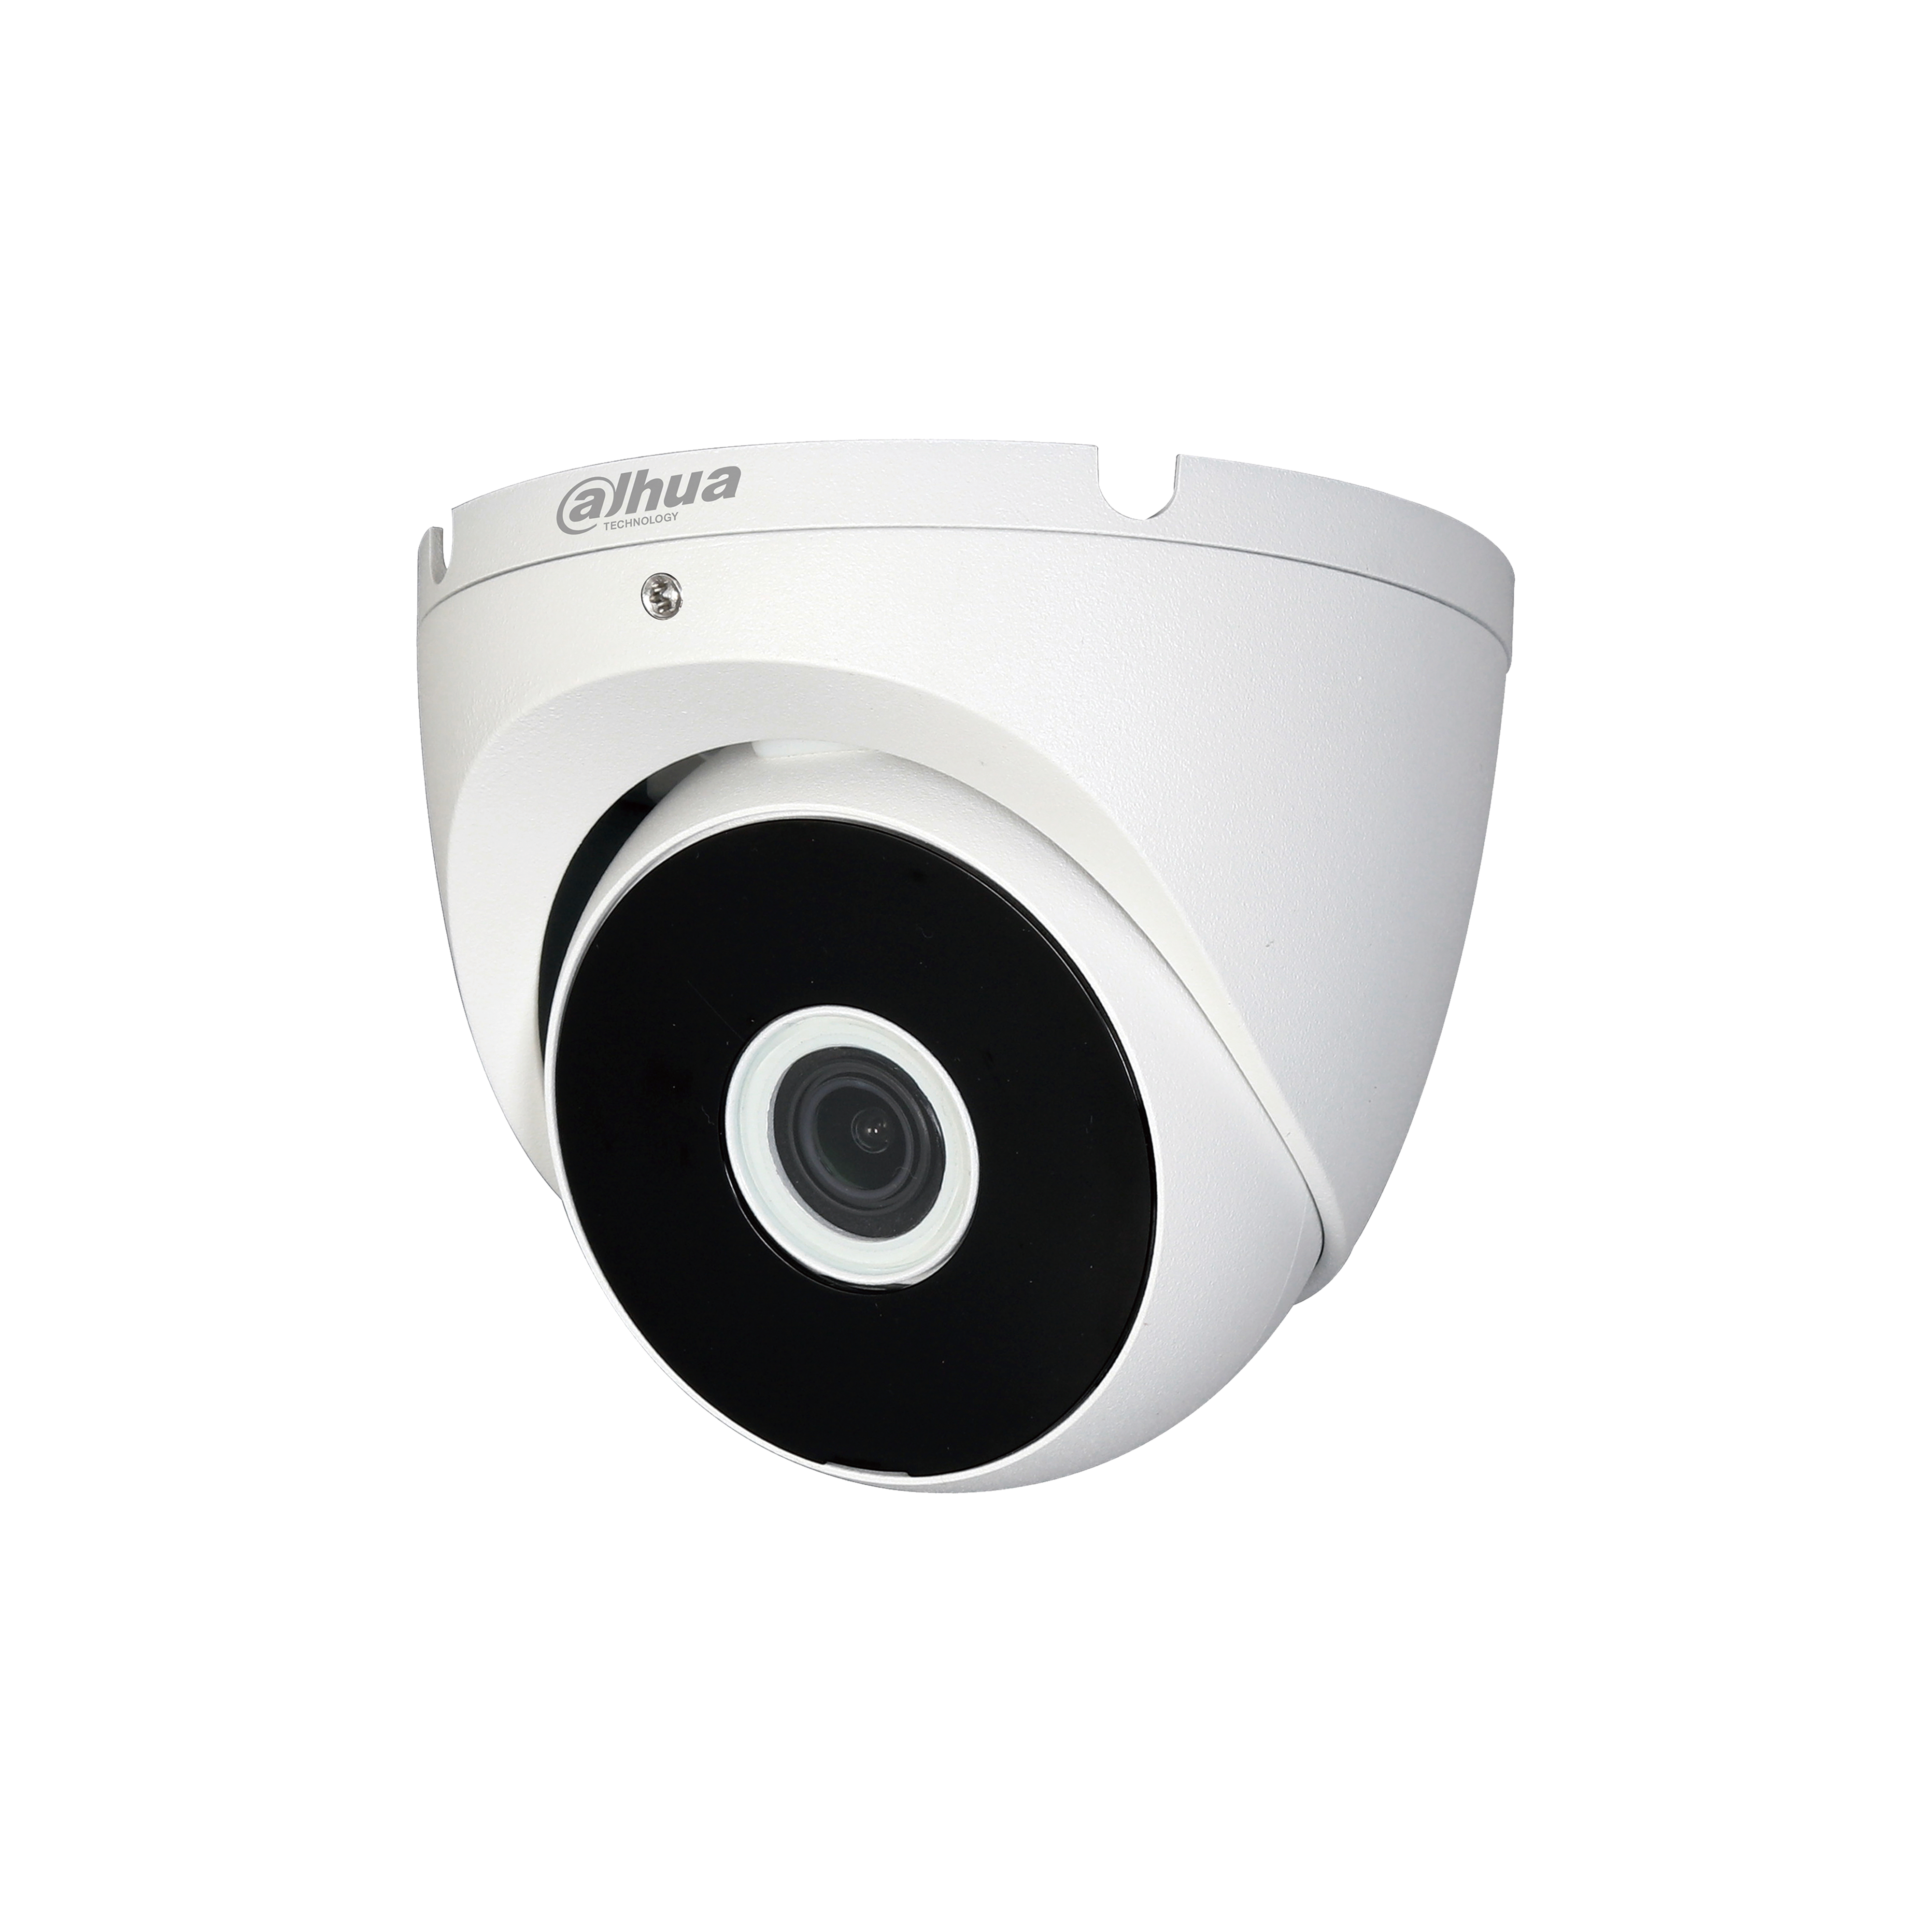 https://www.dahuasecurity.com/asset/upload/product/20180821/DH-HAC-T2A21_Image1.png